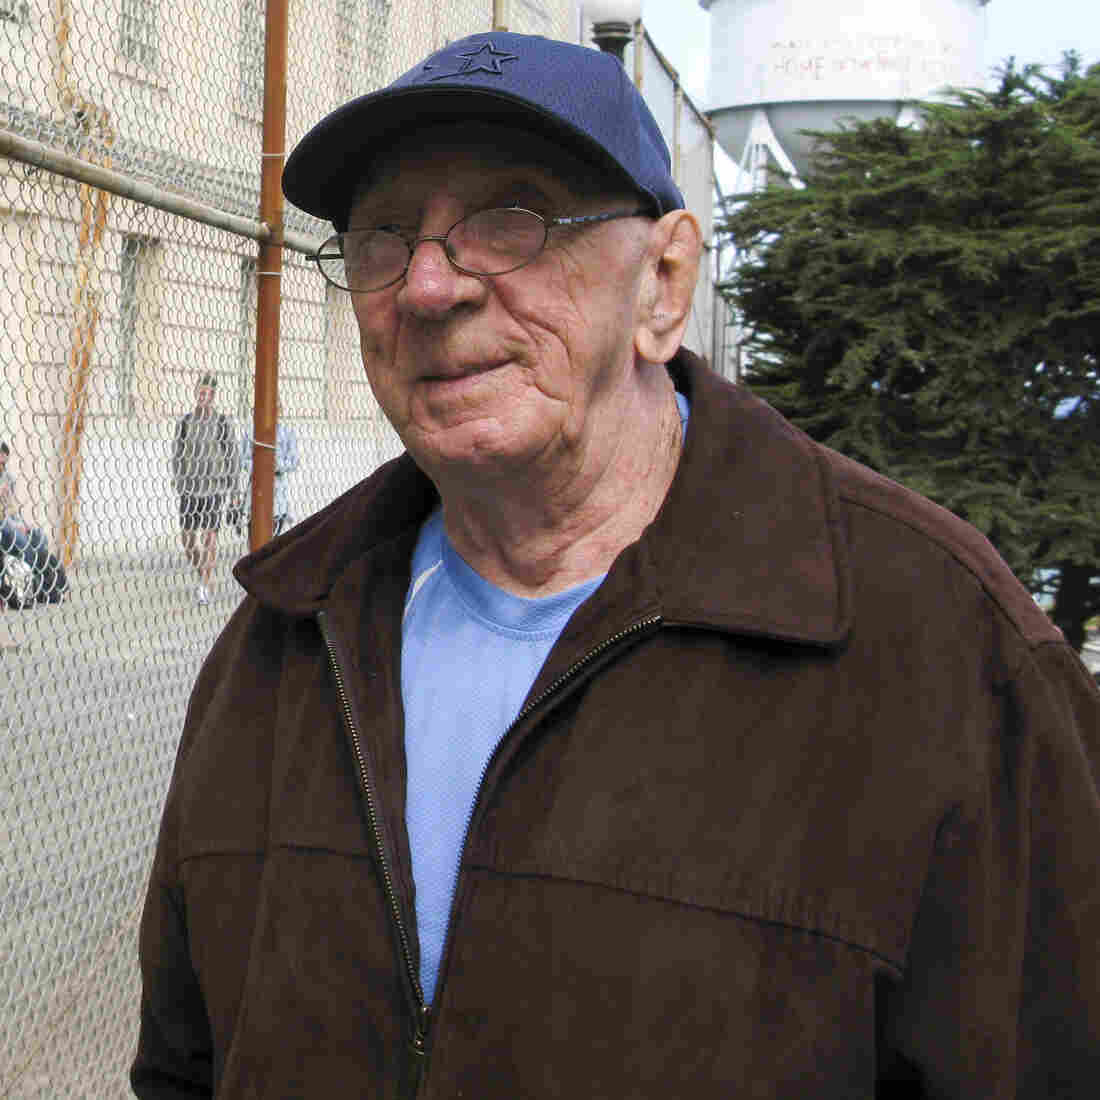 A Night At The Rock: Former Alcatraz Inmate Journeys Back